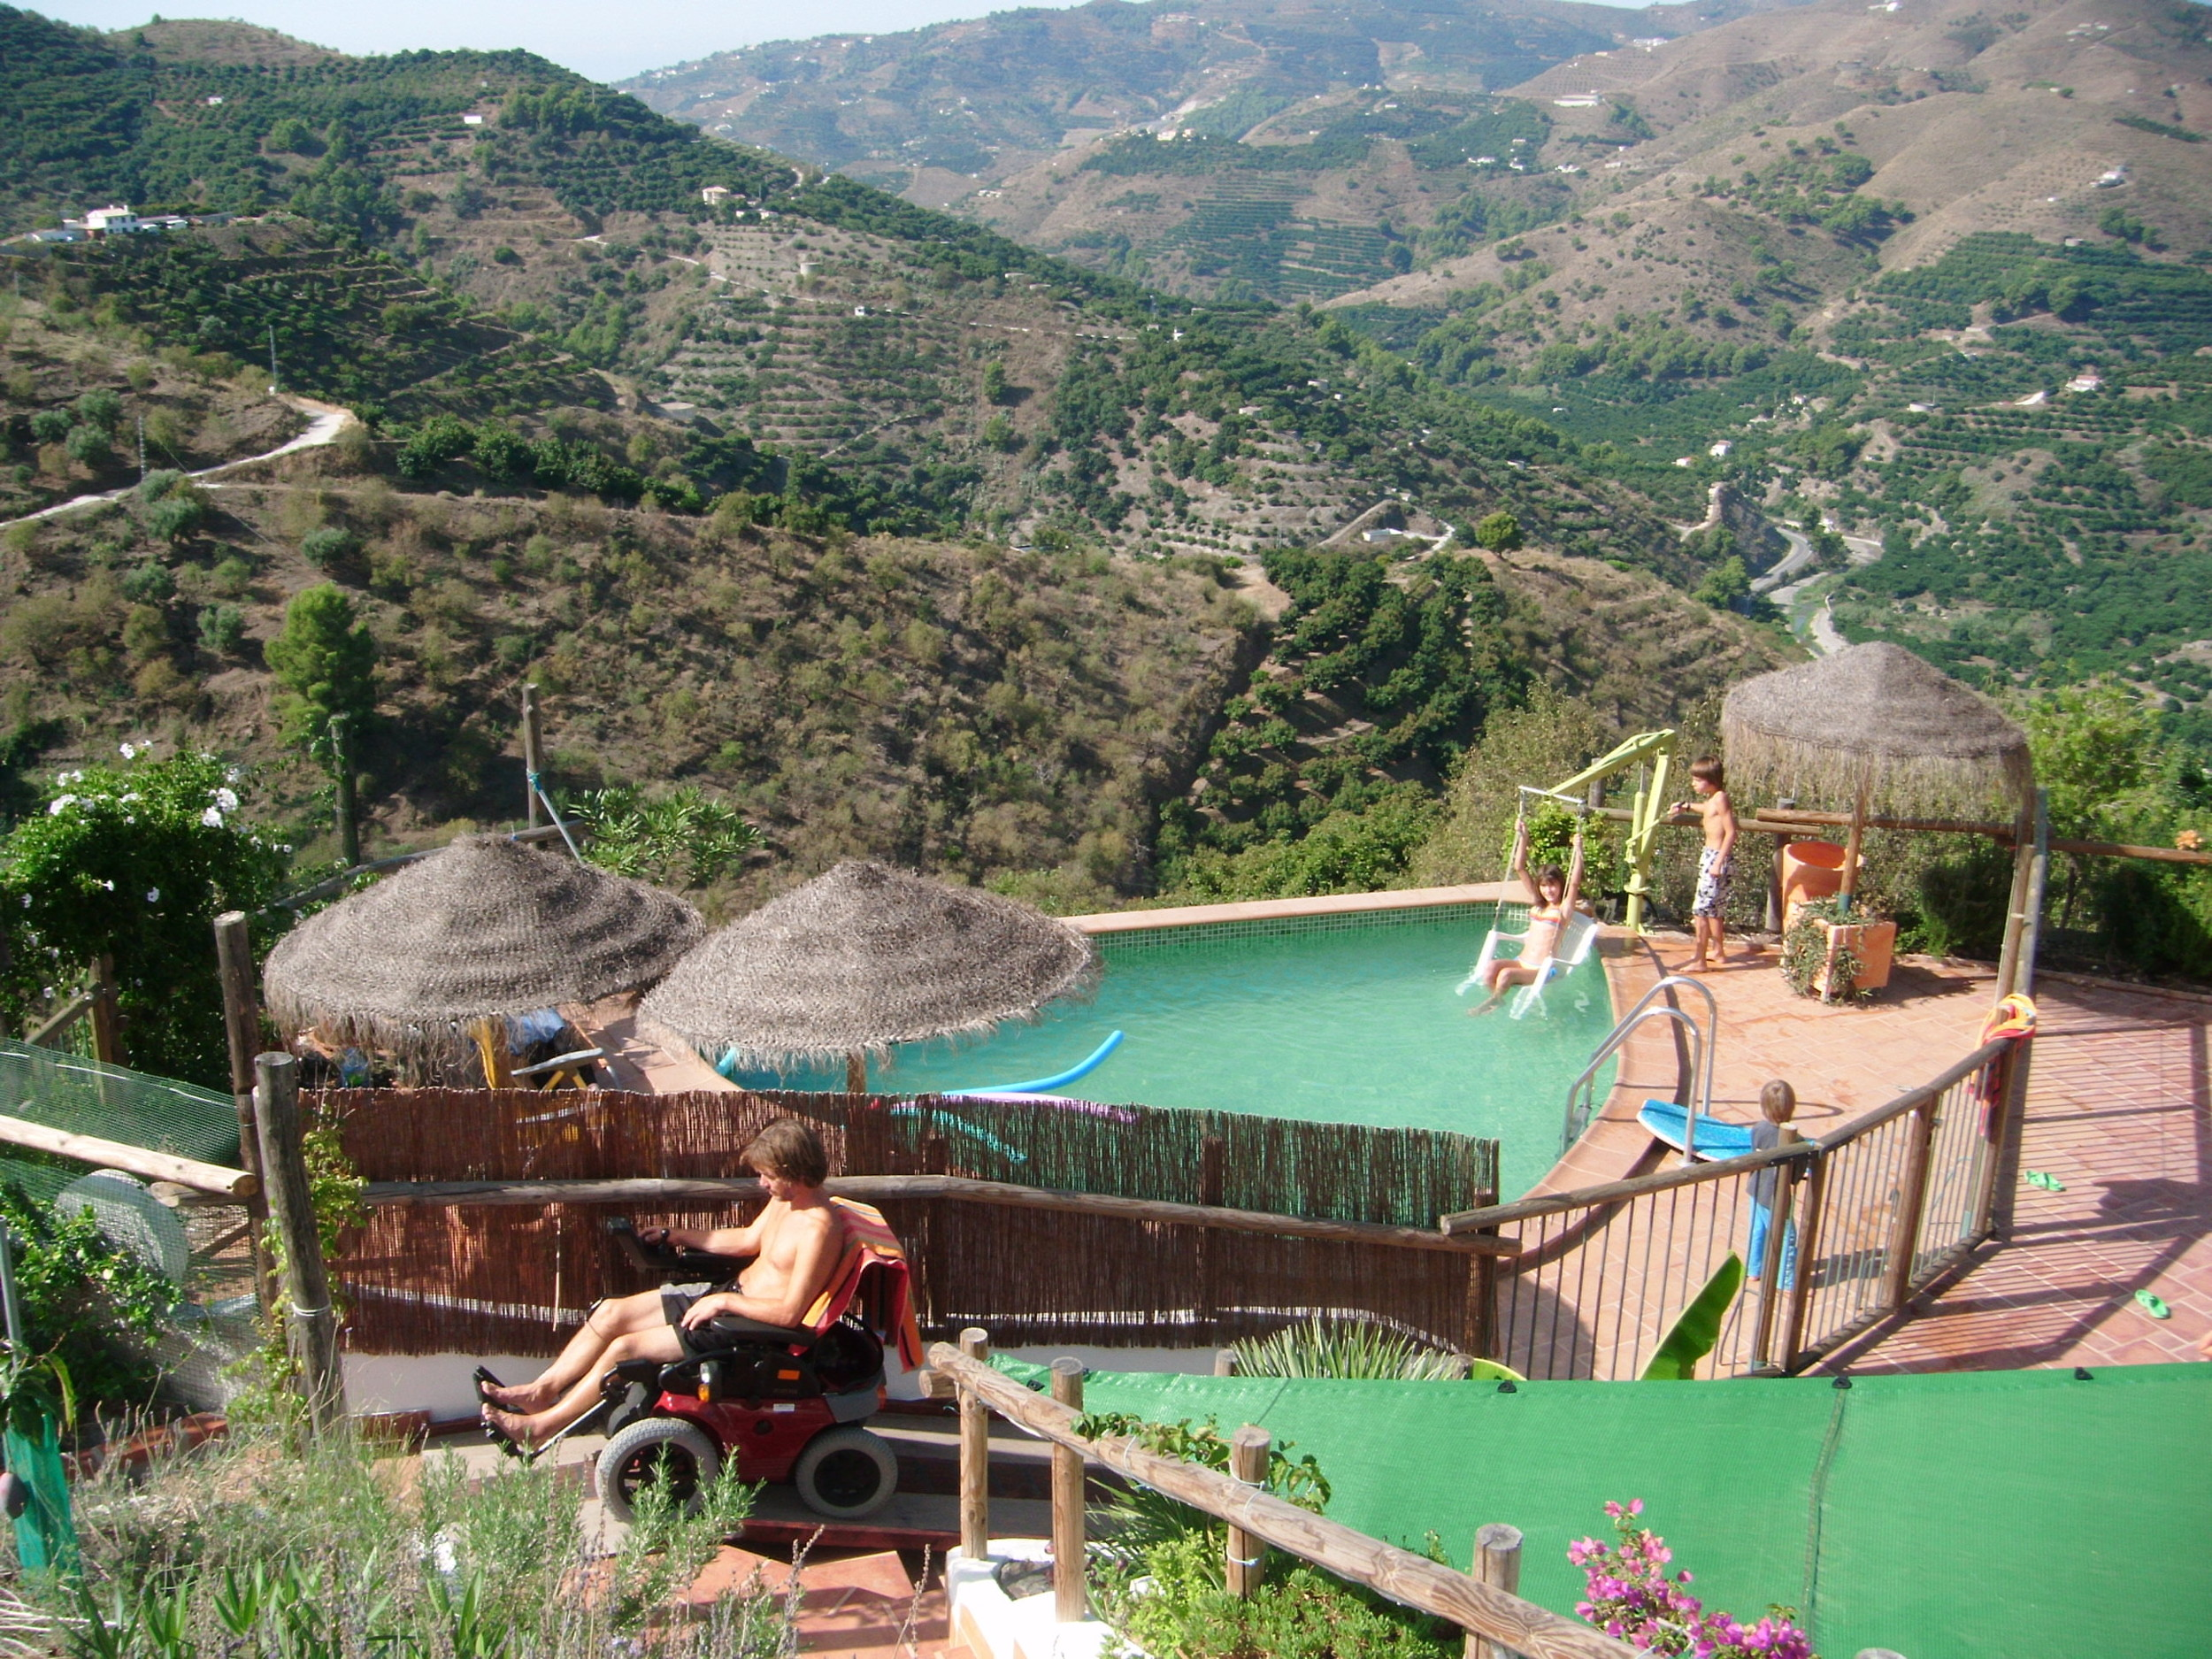 Rollstuhlurlaub in Andalusien - Colina Tropical